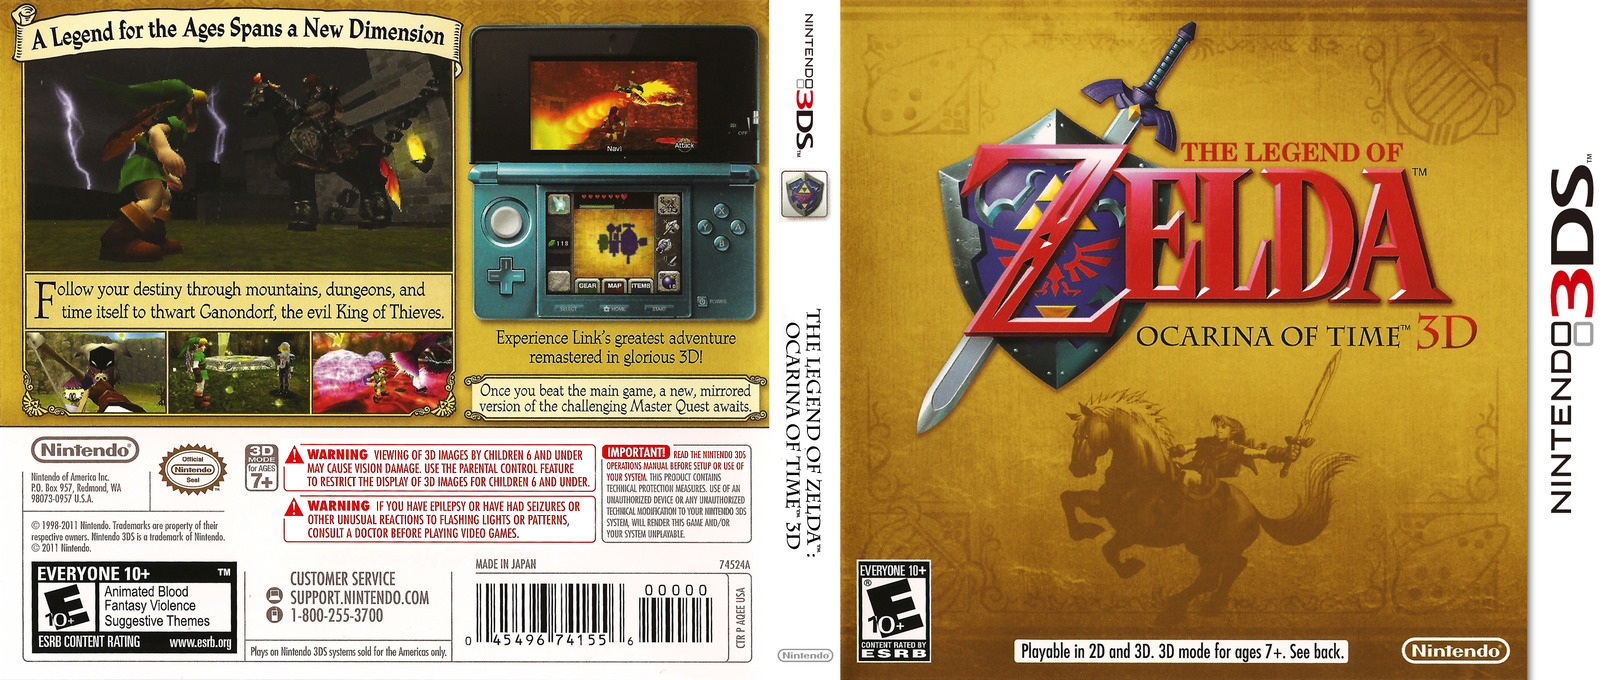 The Legend of Zelda - Ocarina of Time 3D 3DS coverfullHQ (AQEE)